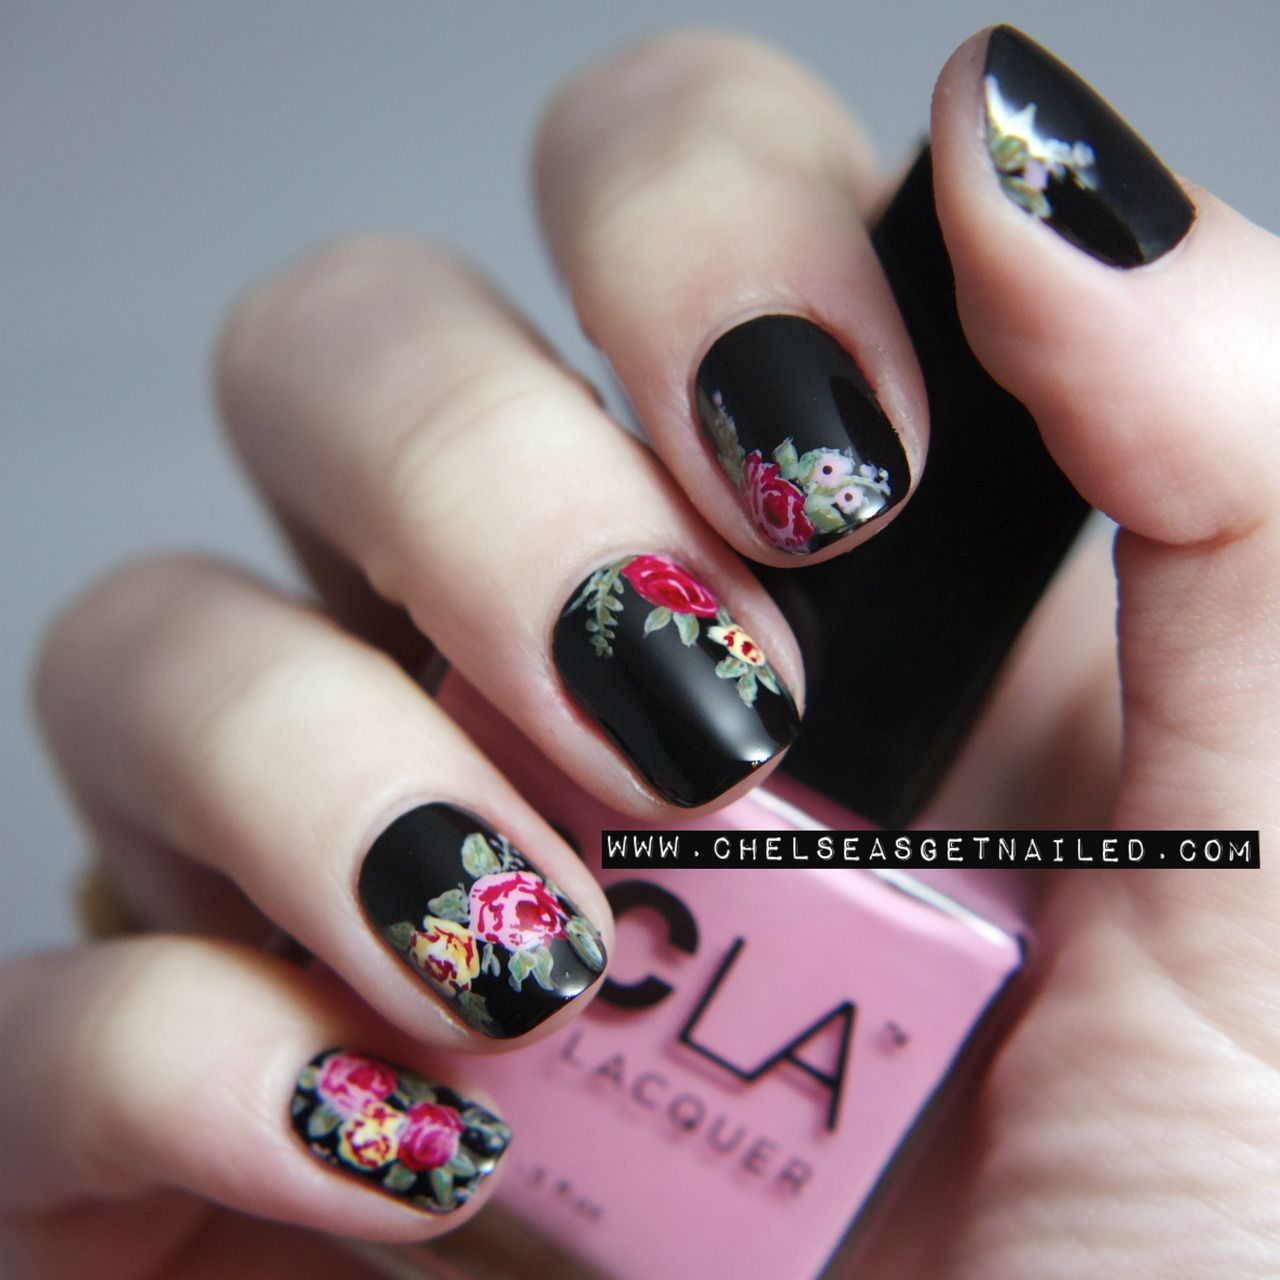 Pretty Nails Tumblr Inspired Nails Inspired By These Shoes